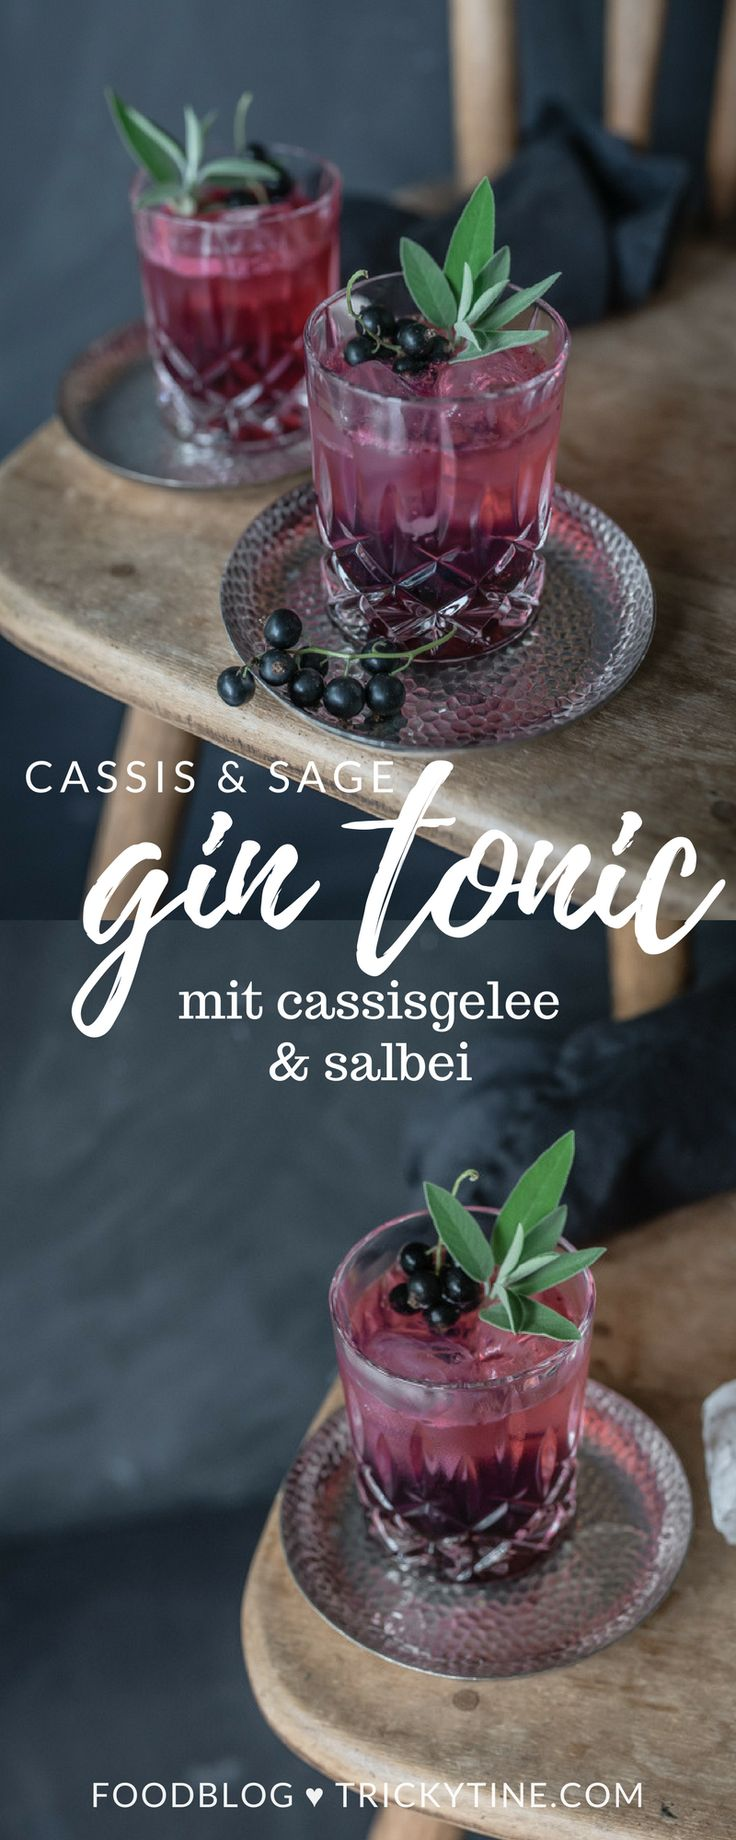 The tricky cassis kiss: Gin Tonic, Cassisgelee, Salbei – trickytine